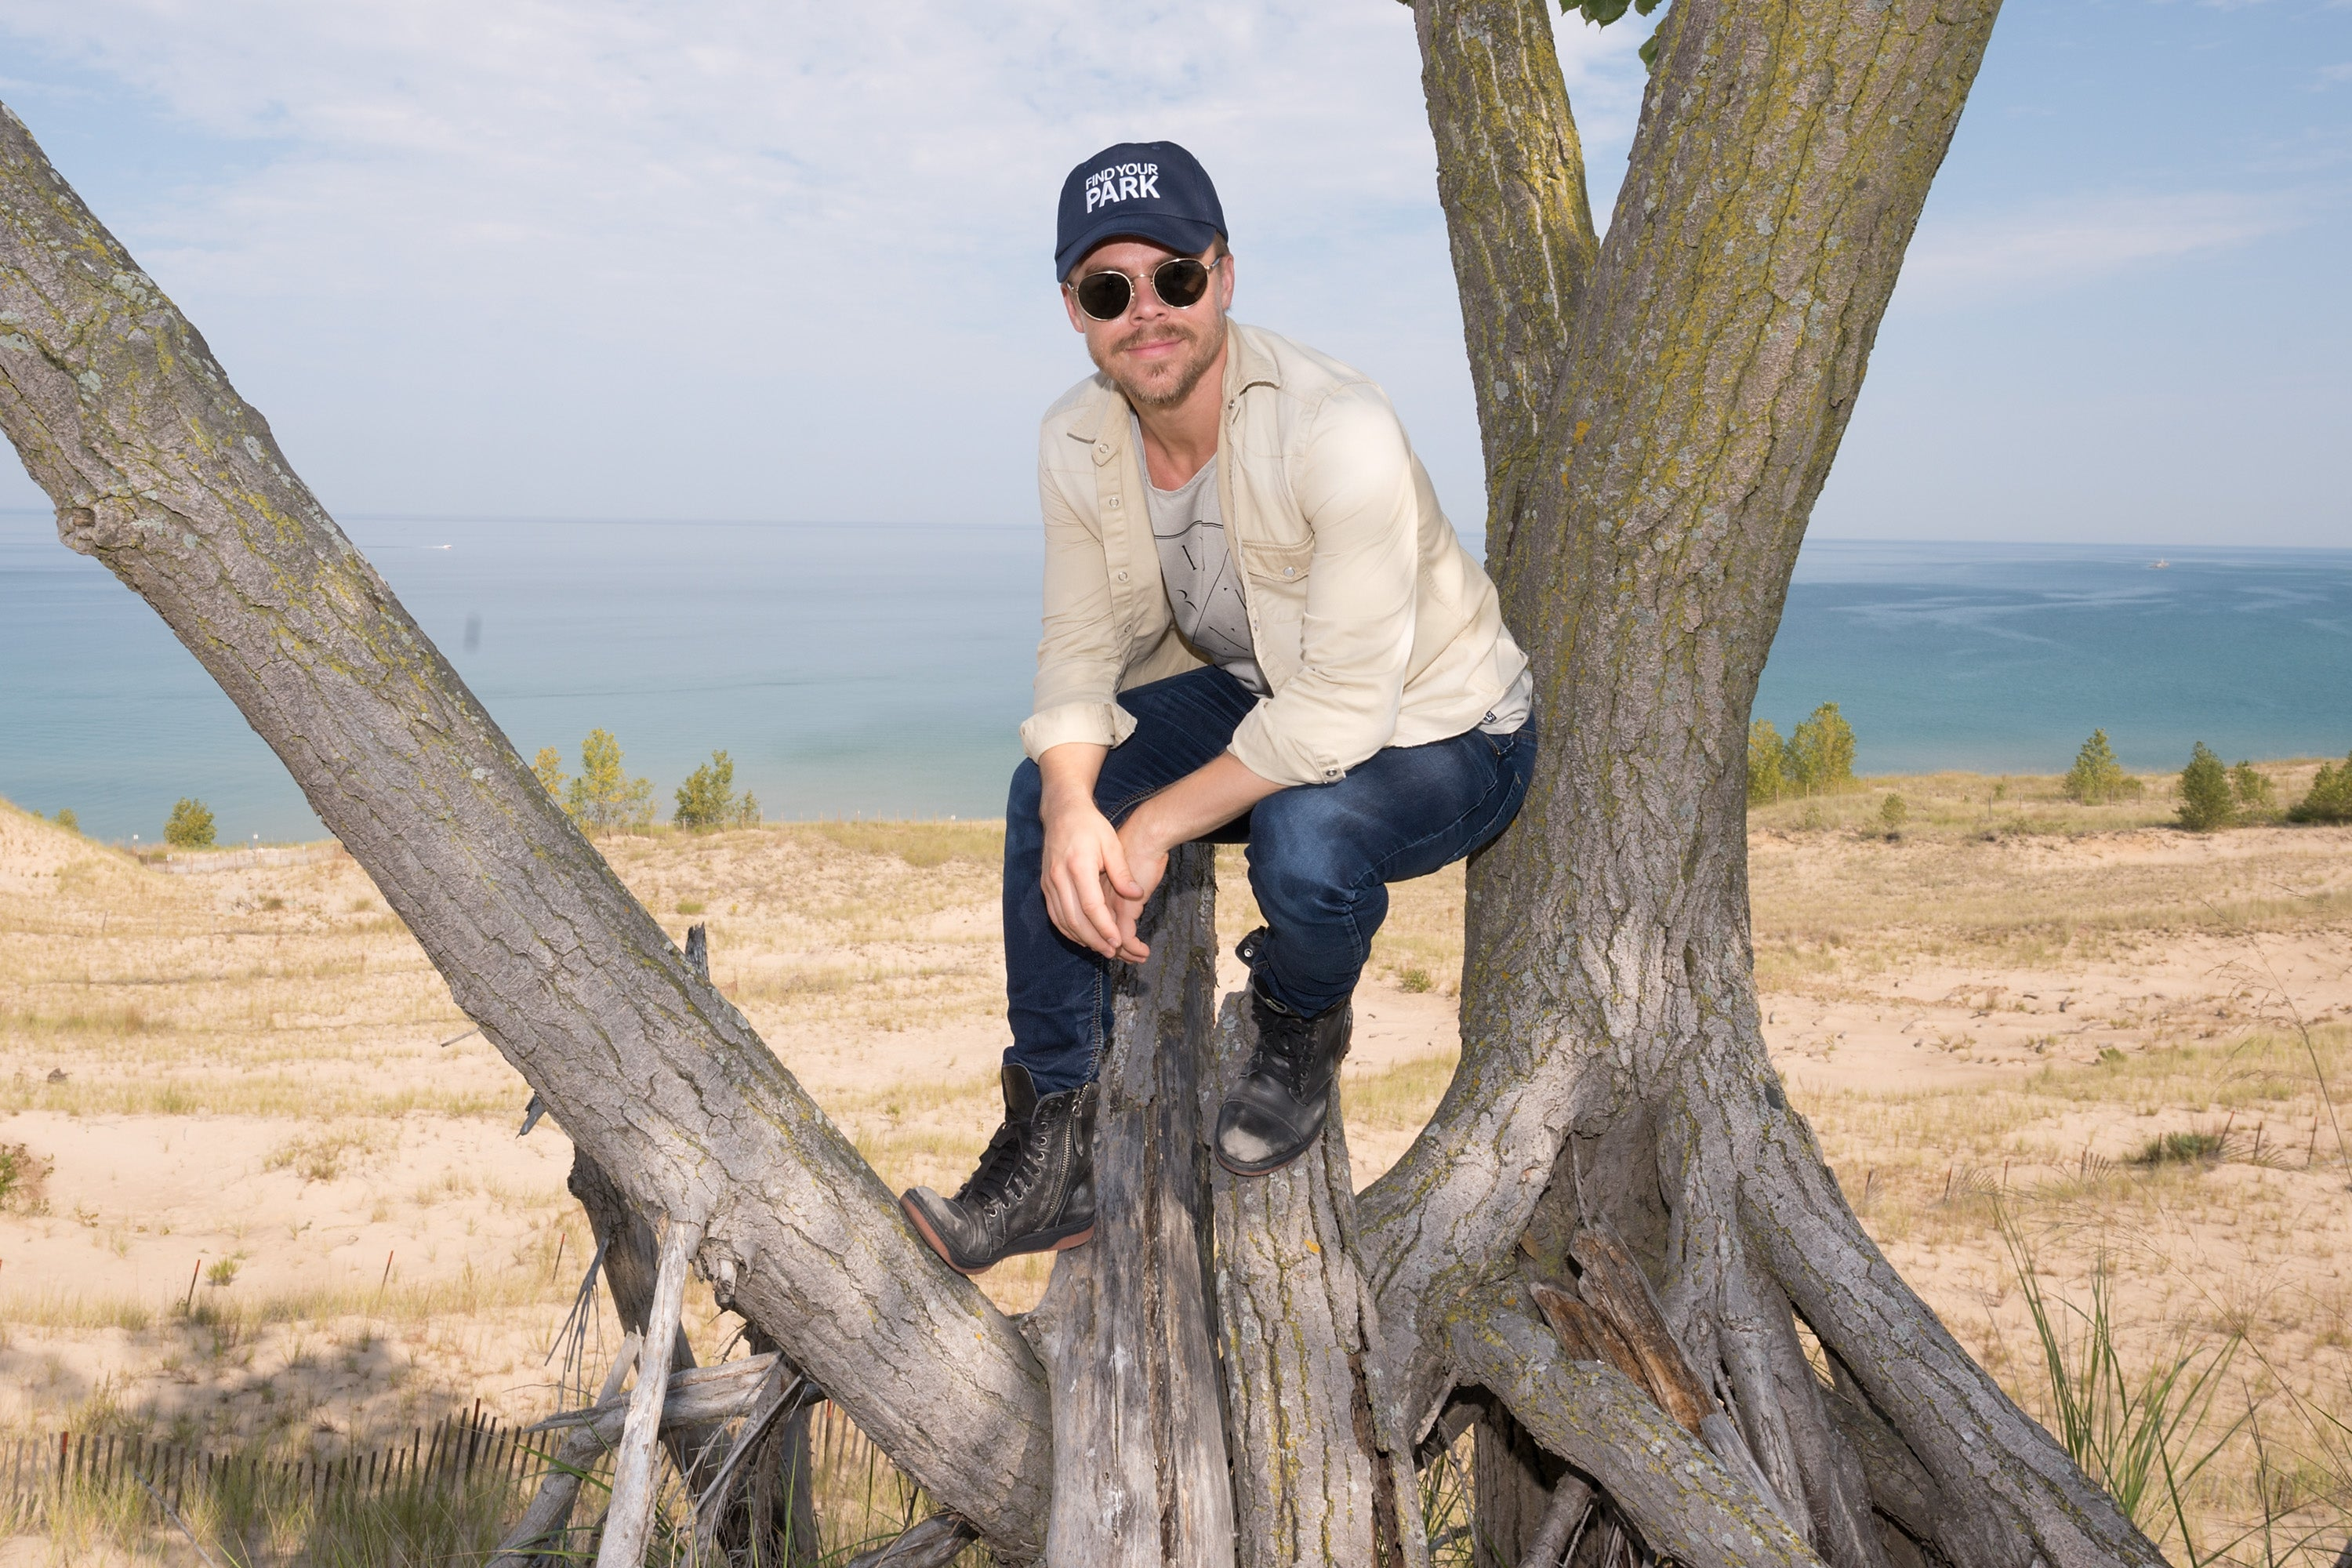 Derek Hough at Indiana Dunes National Lakeshore